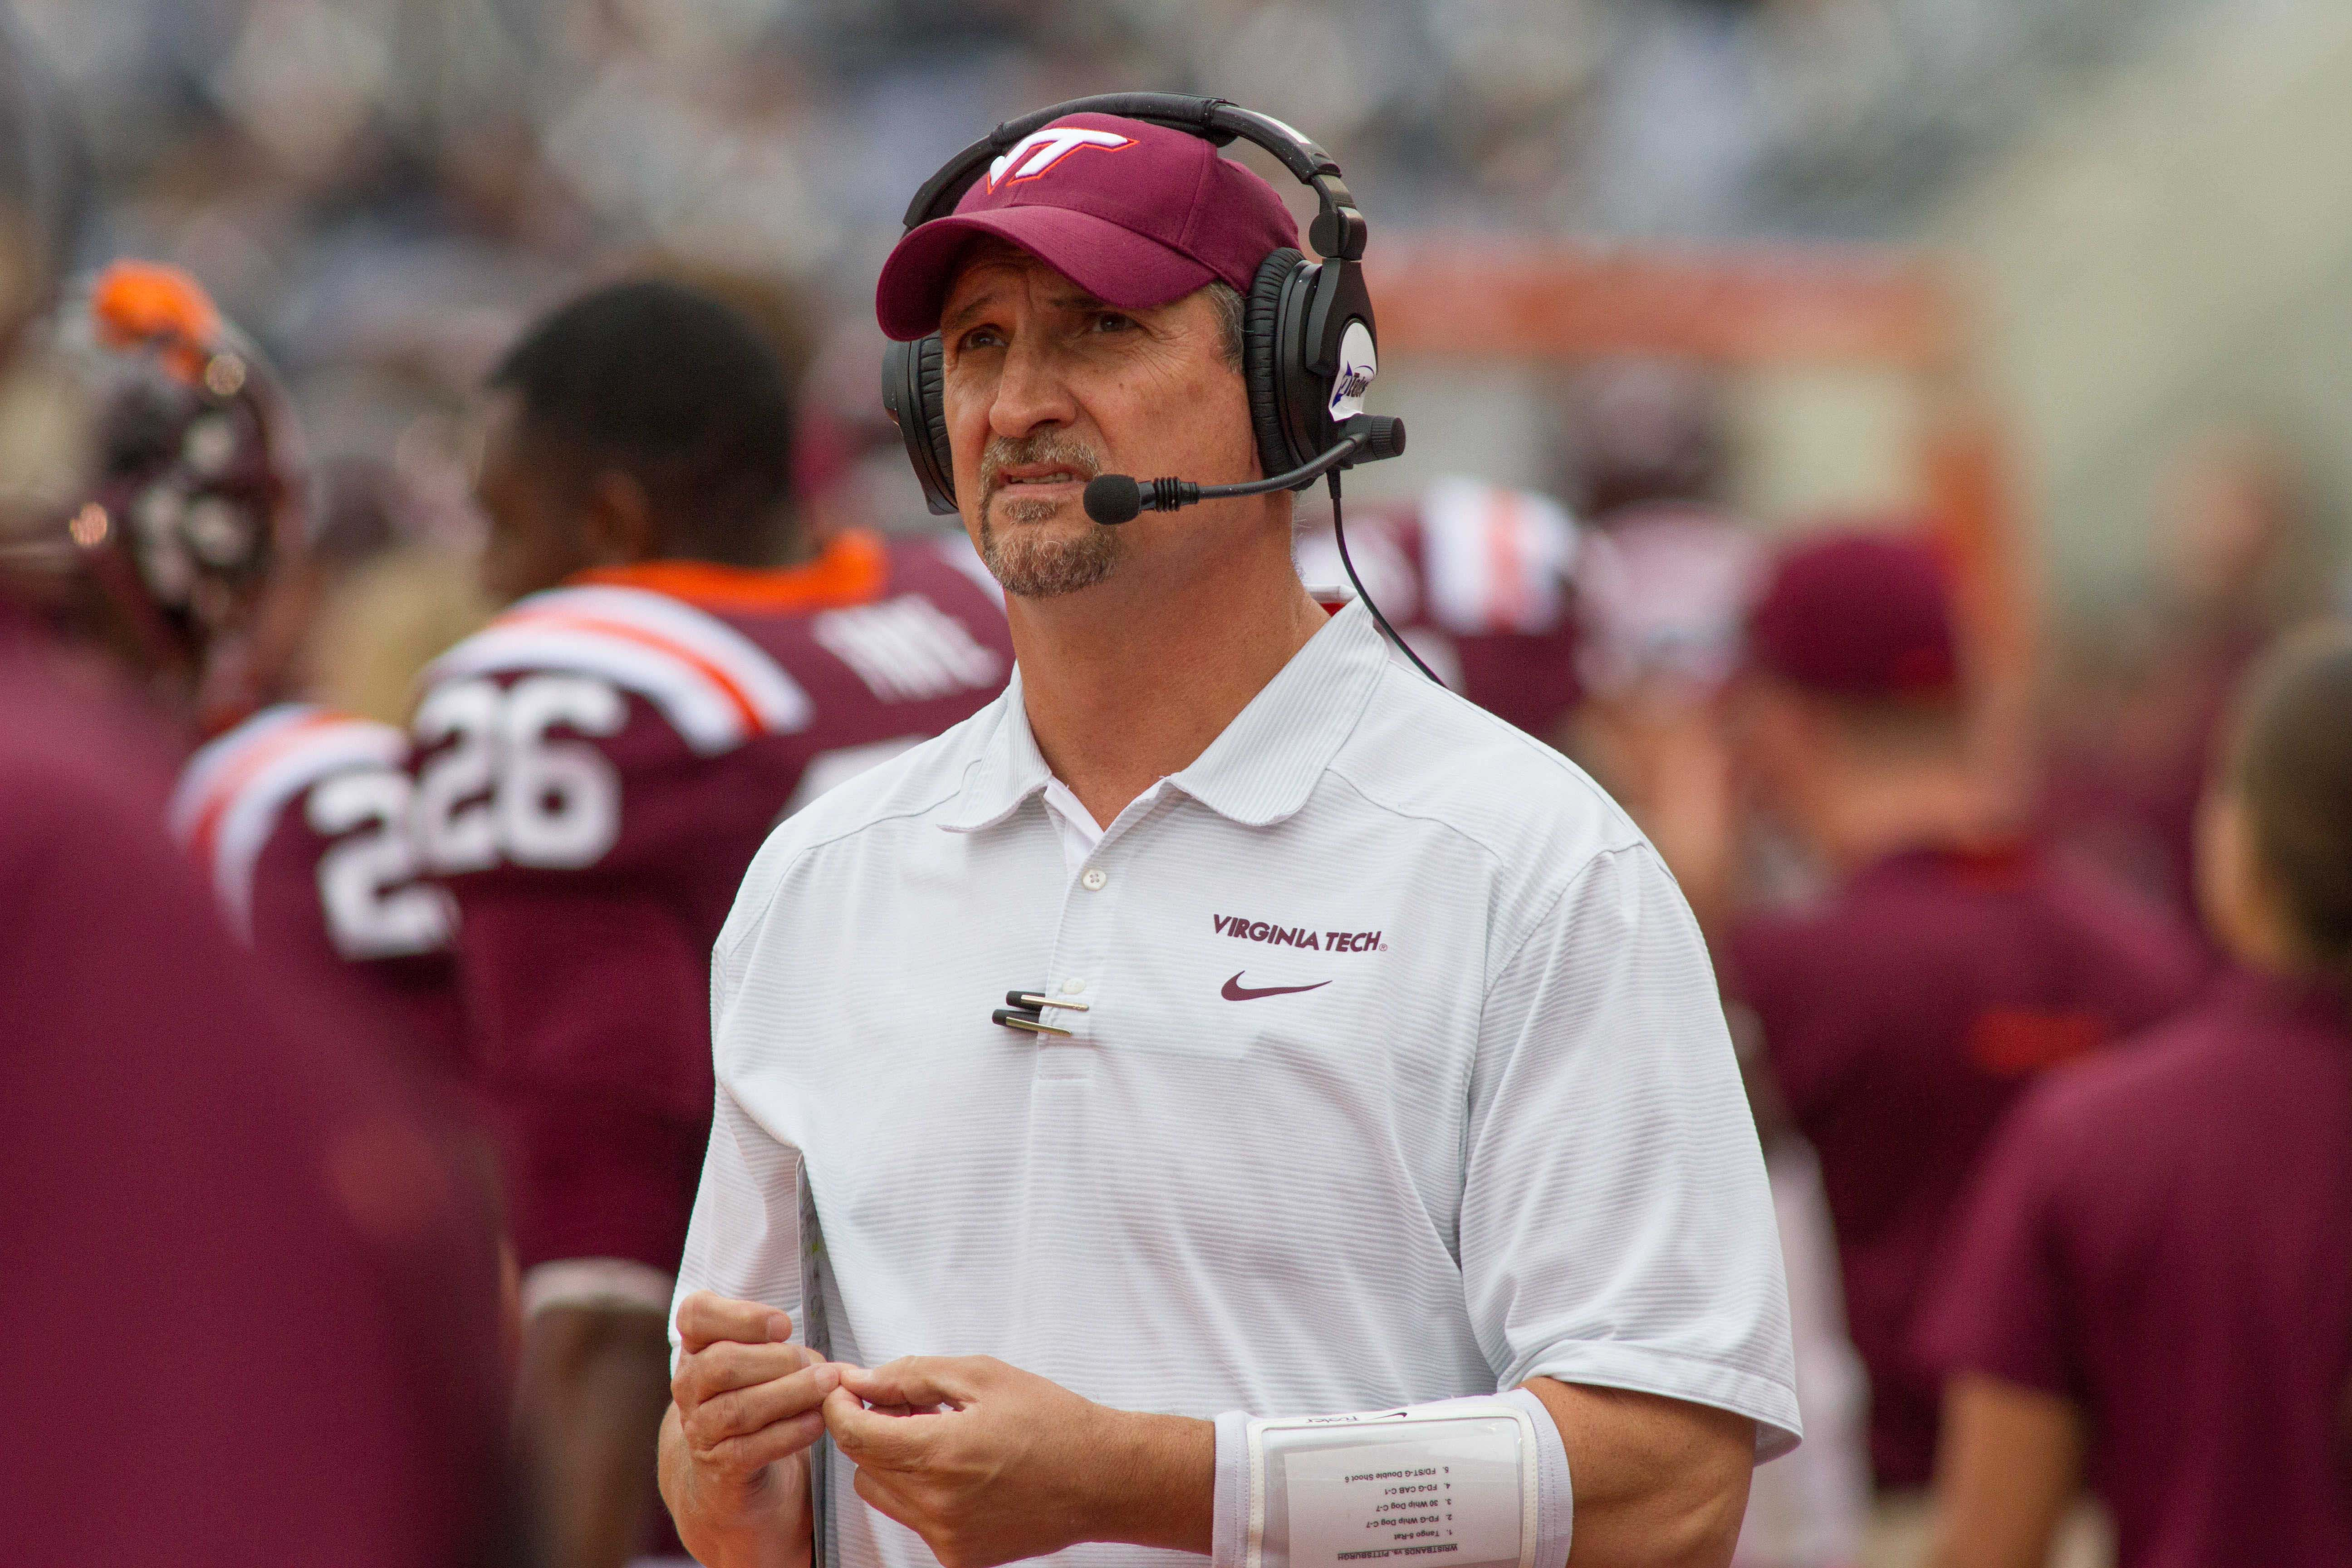 Virginia Tech considering potential monetary fines of its amateur athletes, says coach